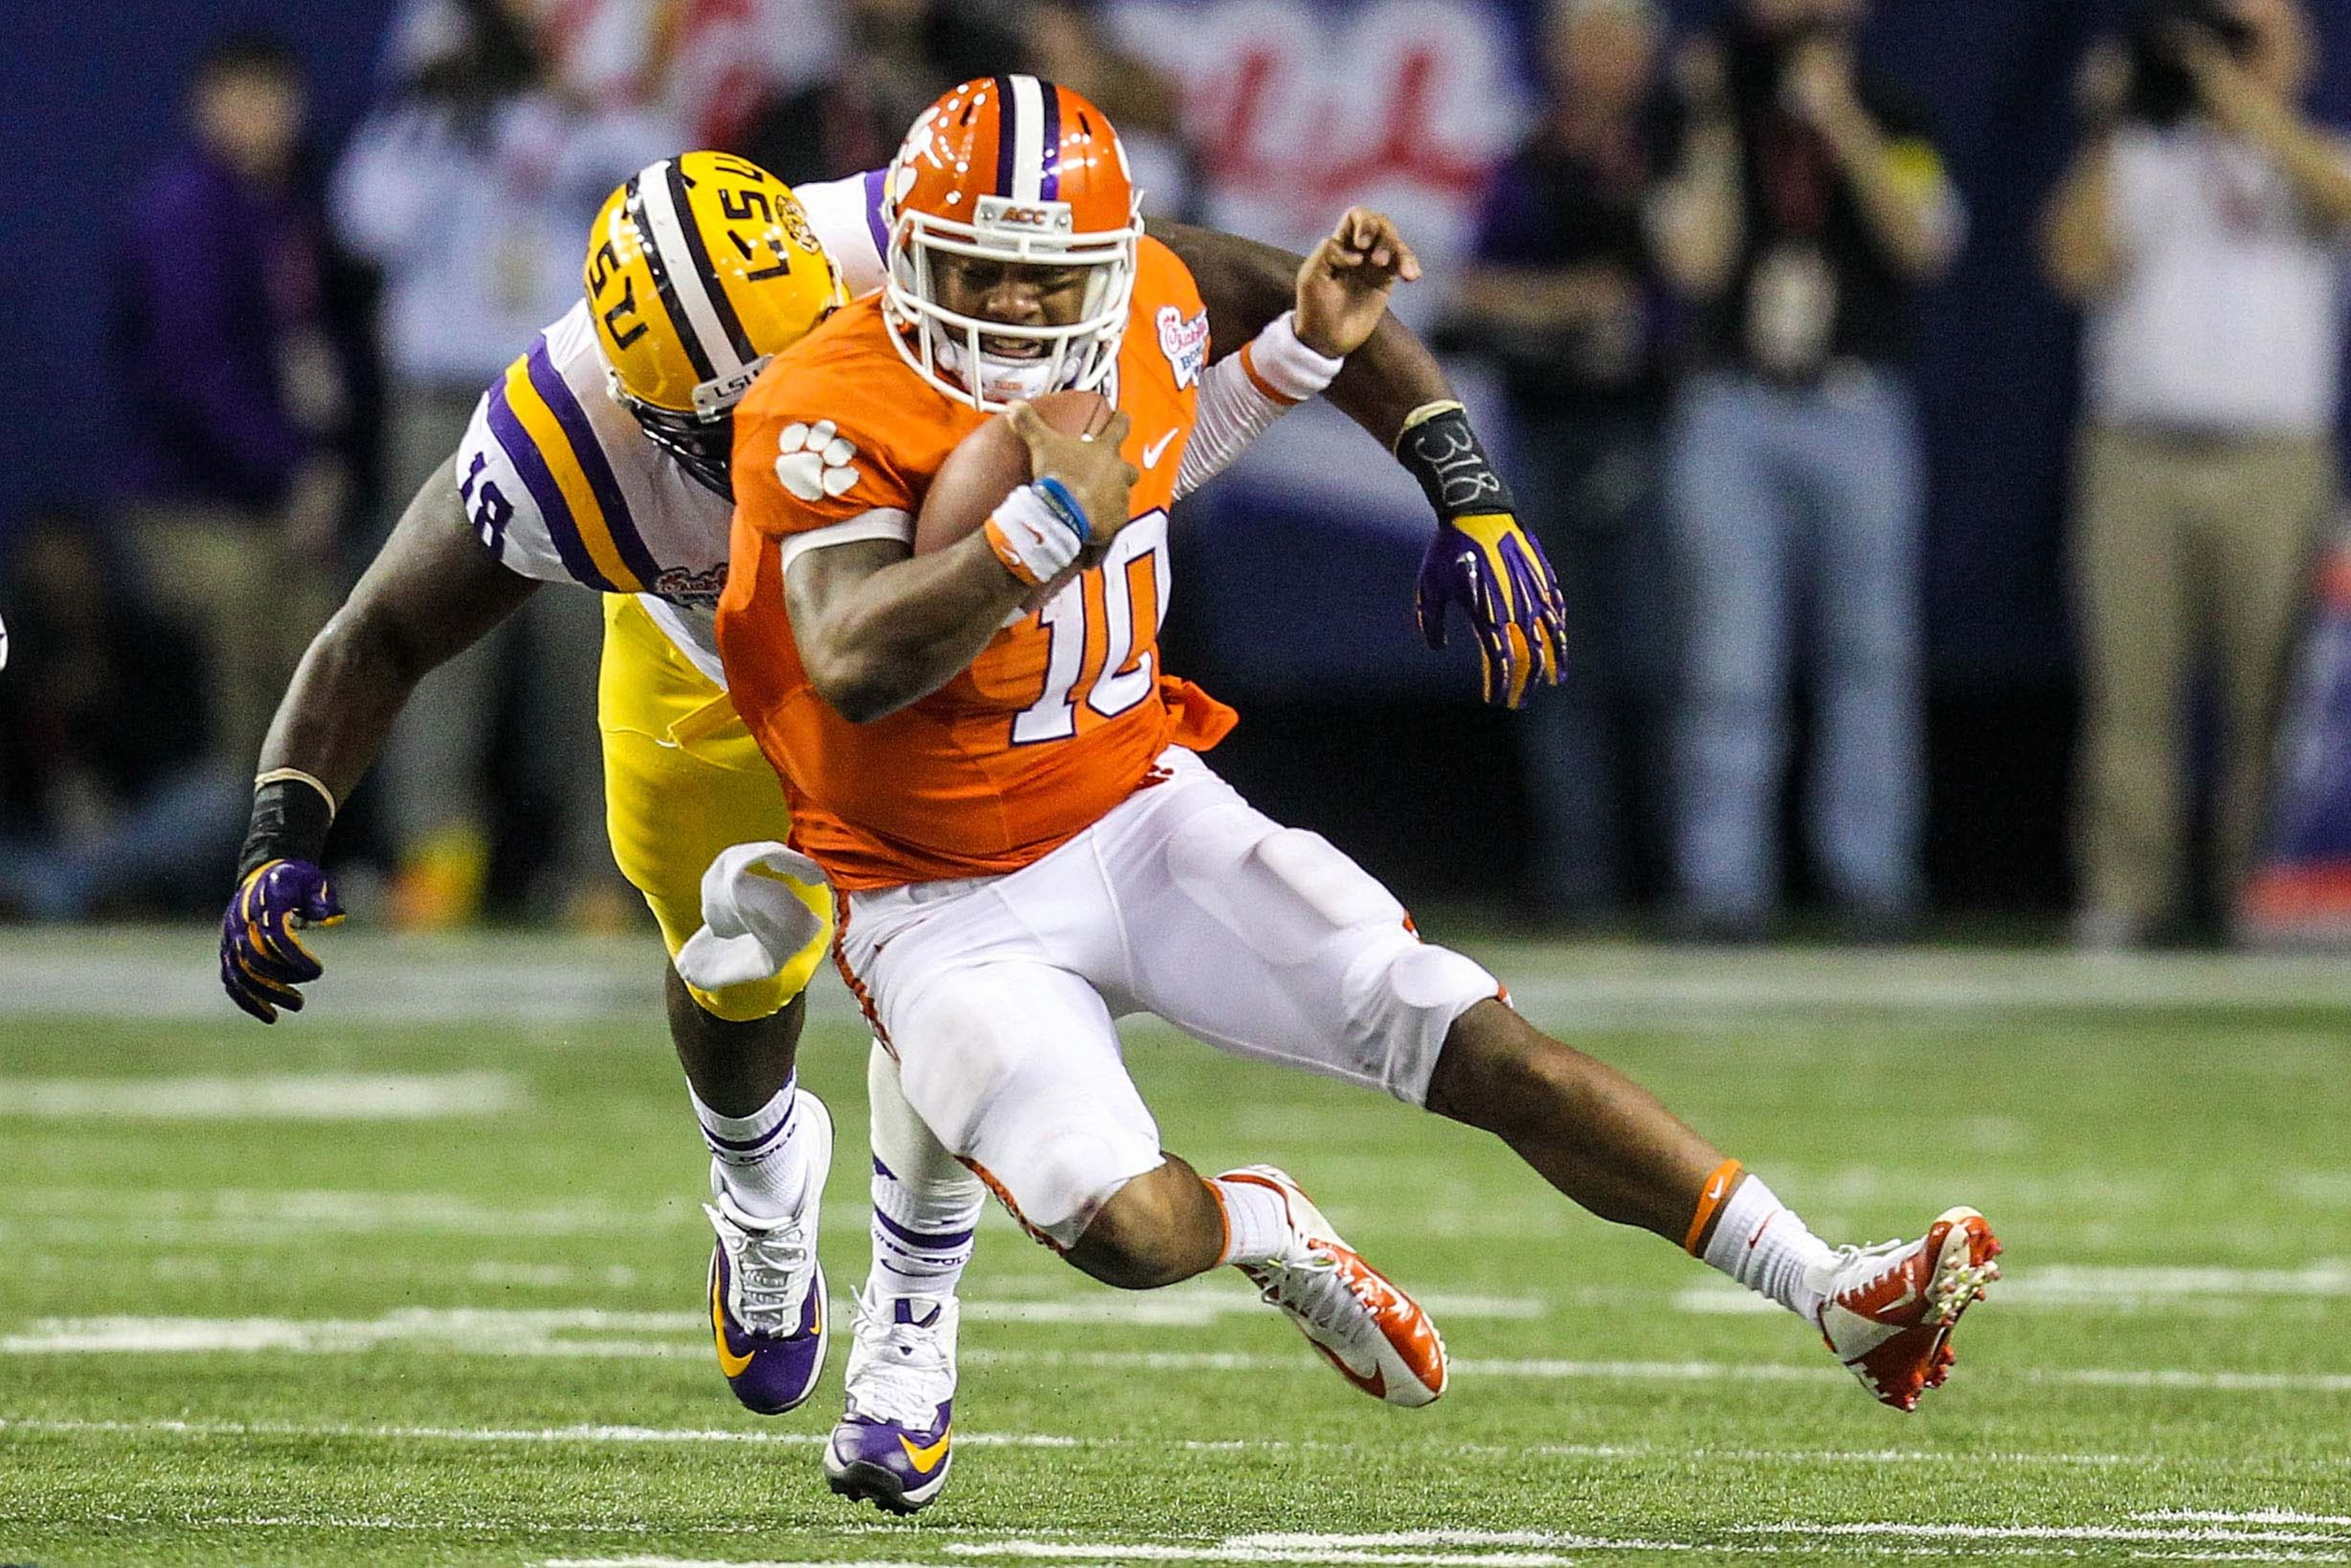 Tajh Boyd's numbers against GT and USC were markedly better than a certain someone last season.